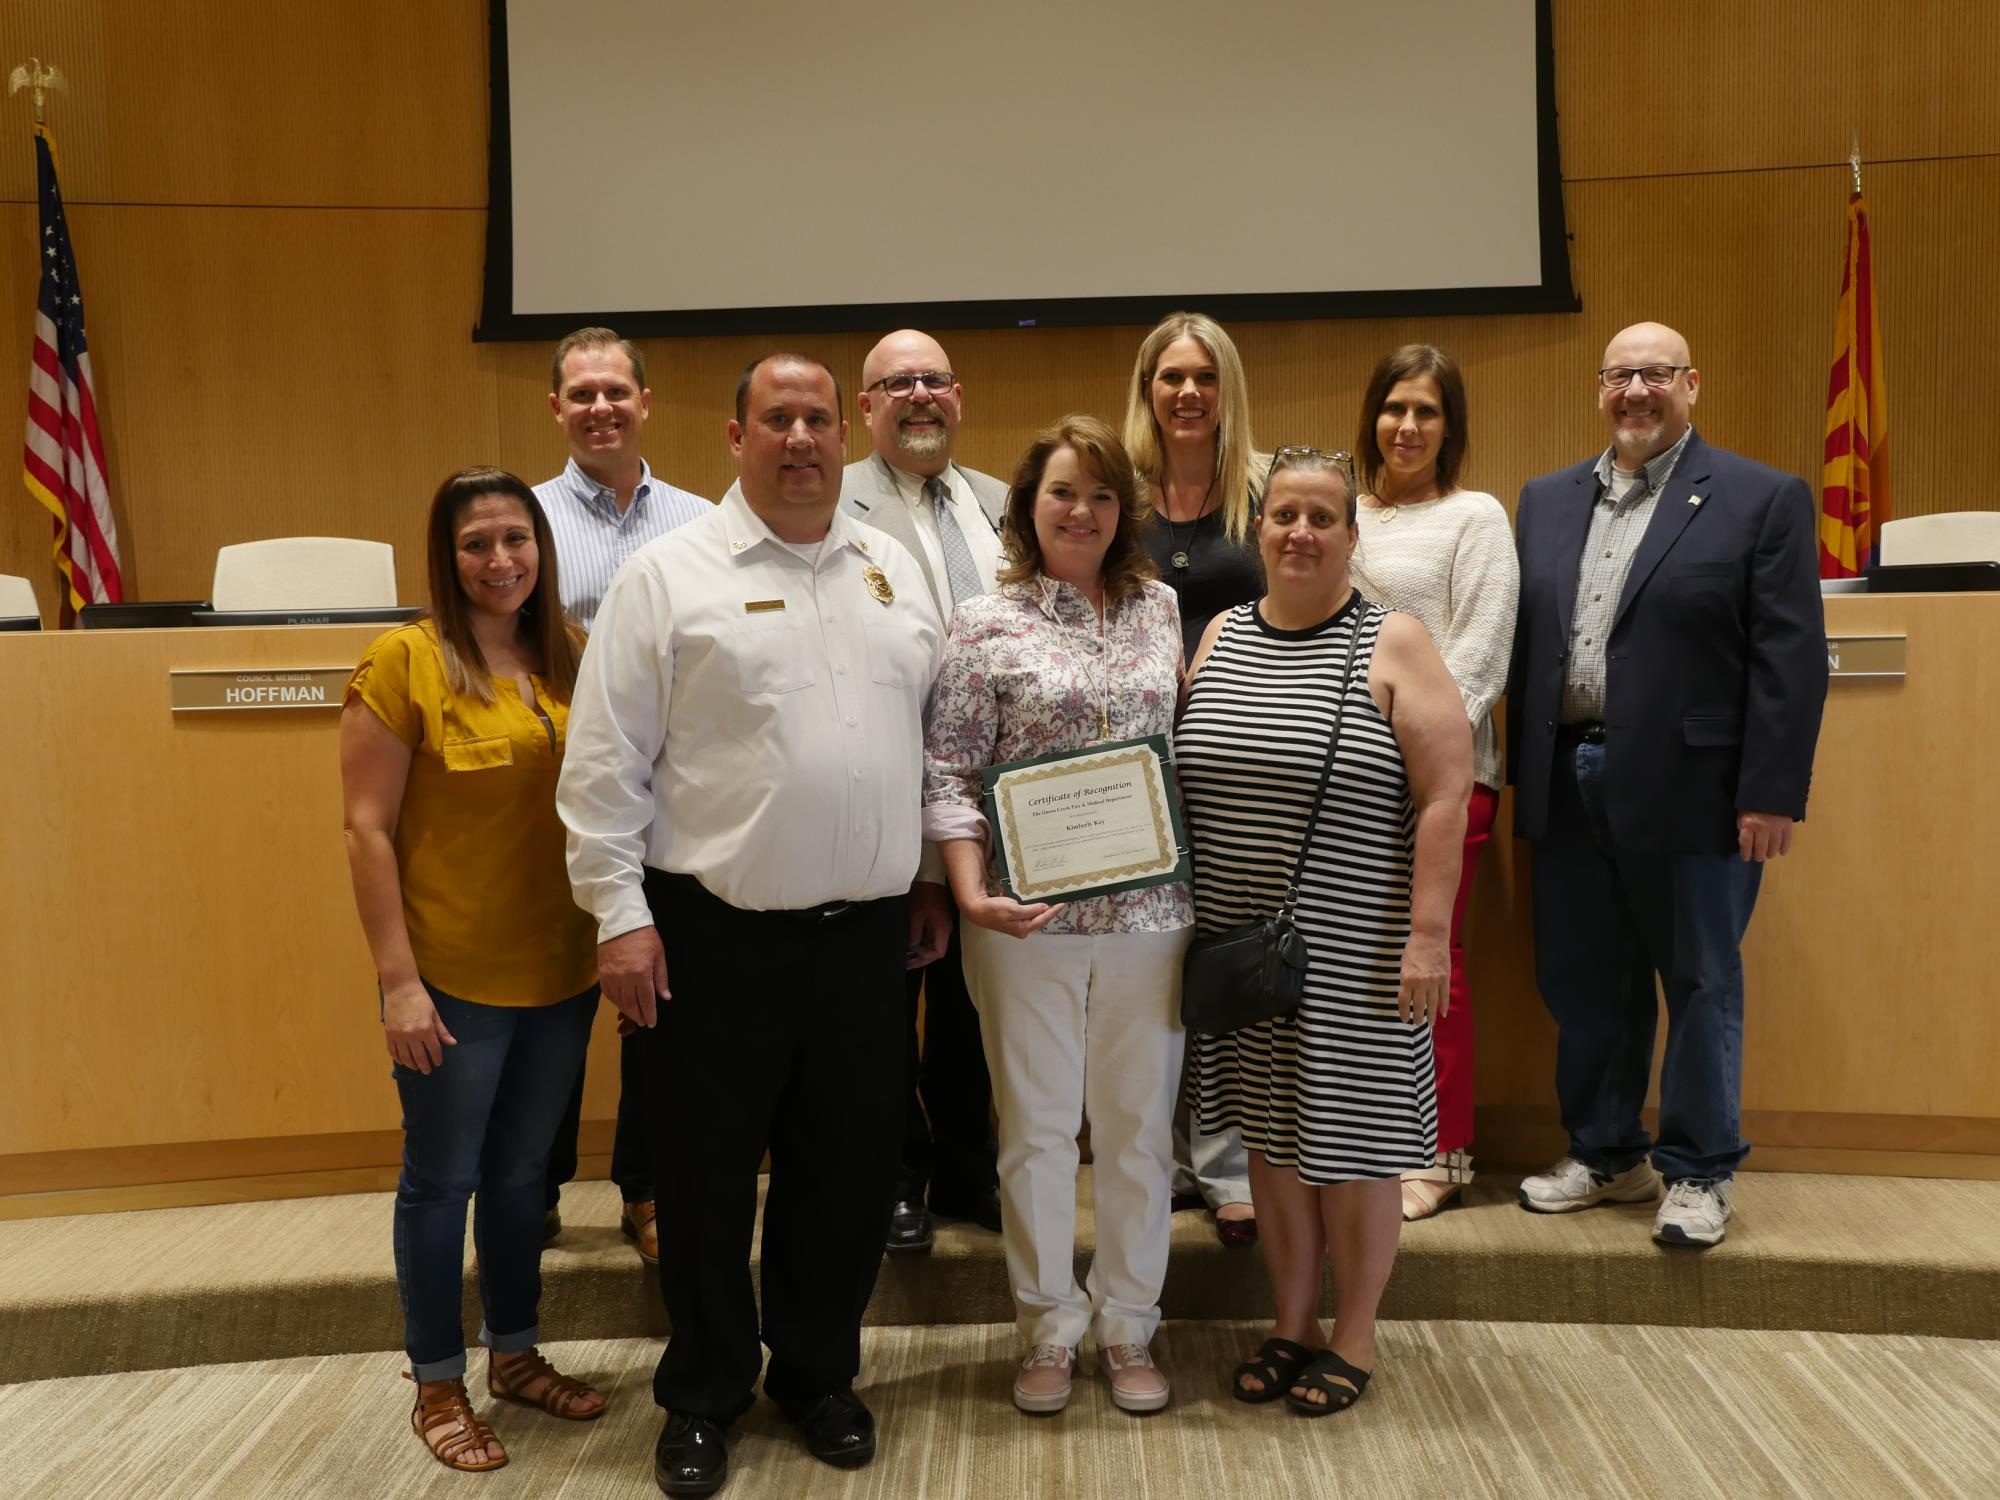 Queen Creek Fire & Medical Recognizes Kimberly Key for her Life Saving Efforts